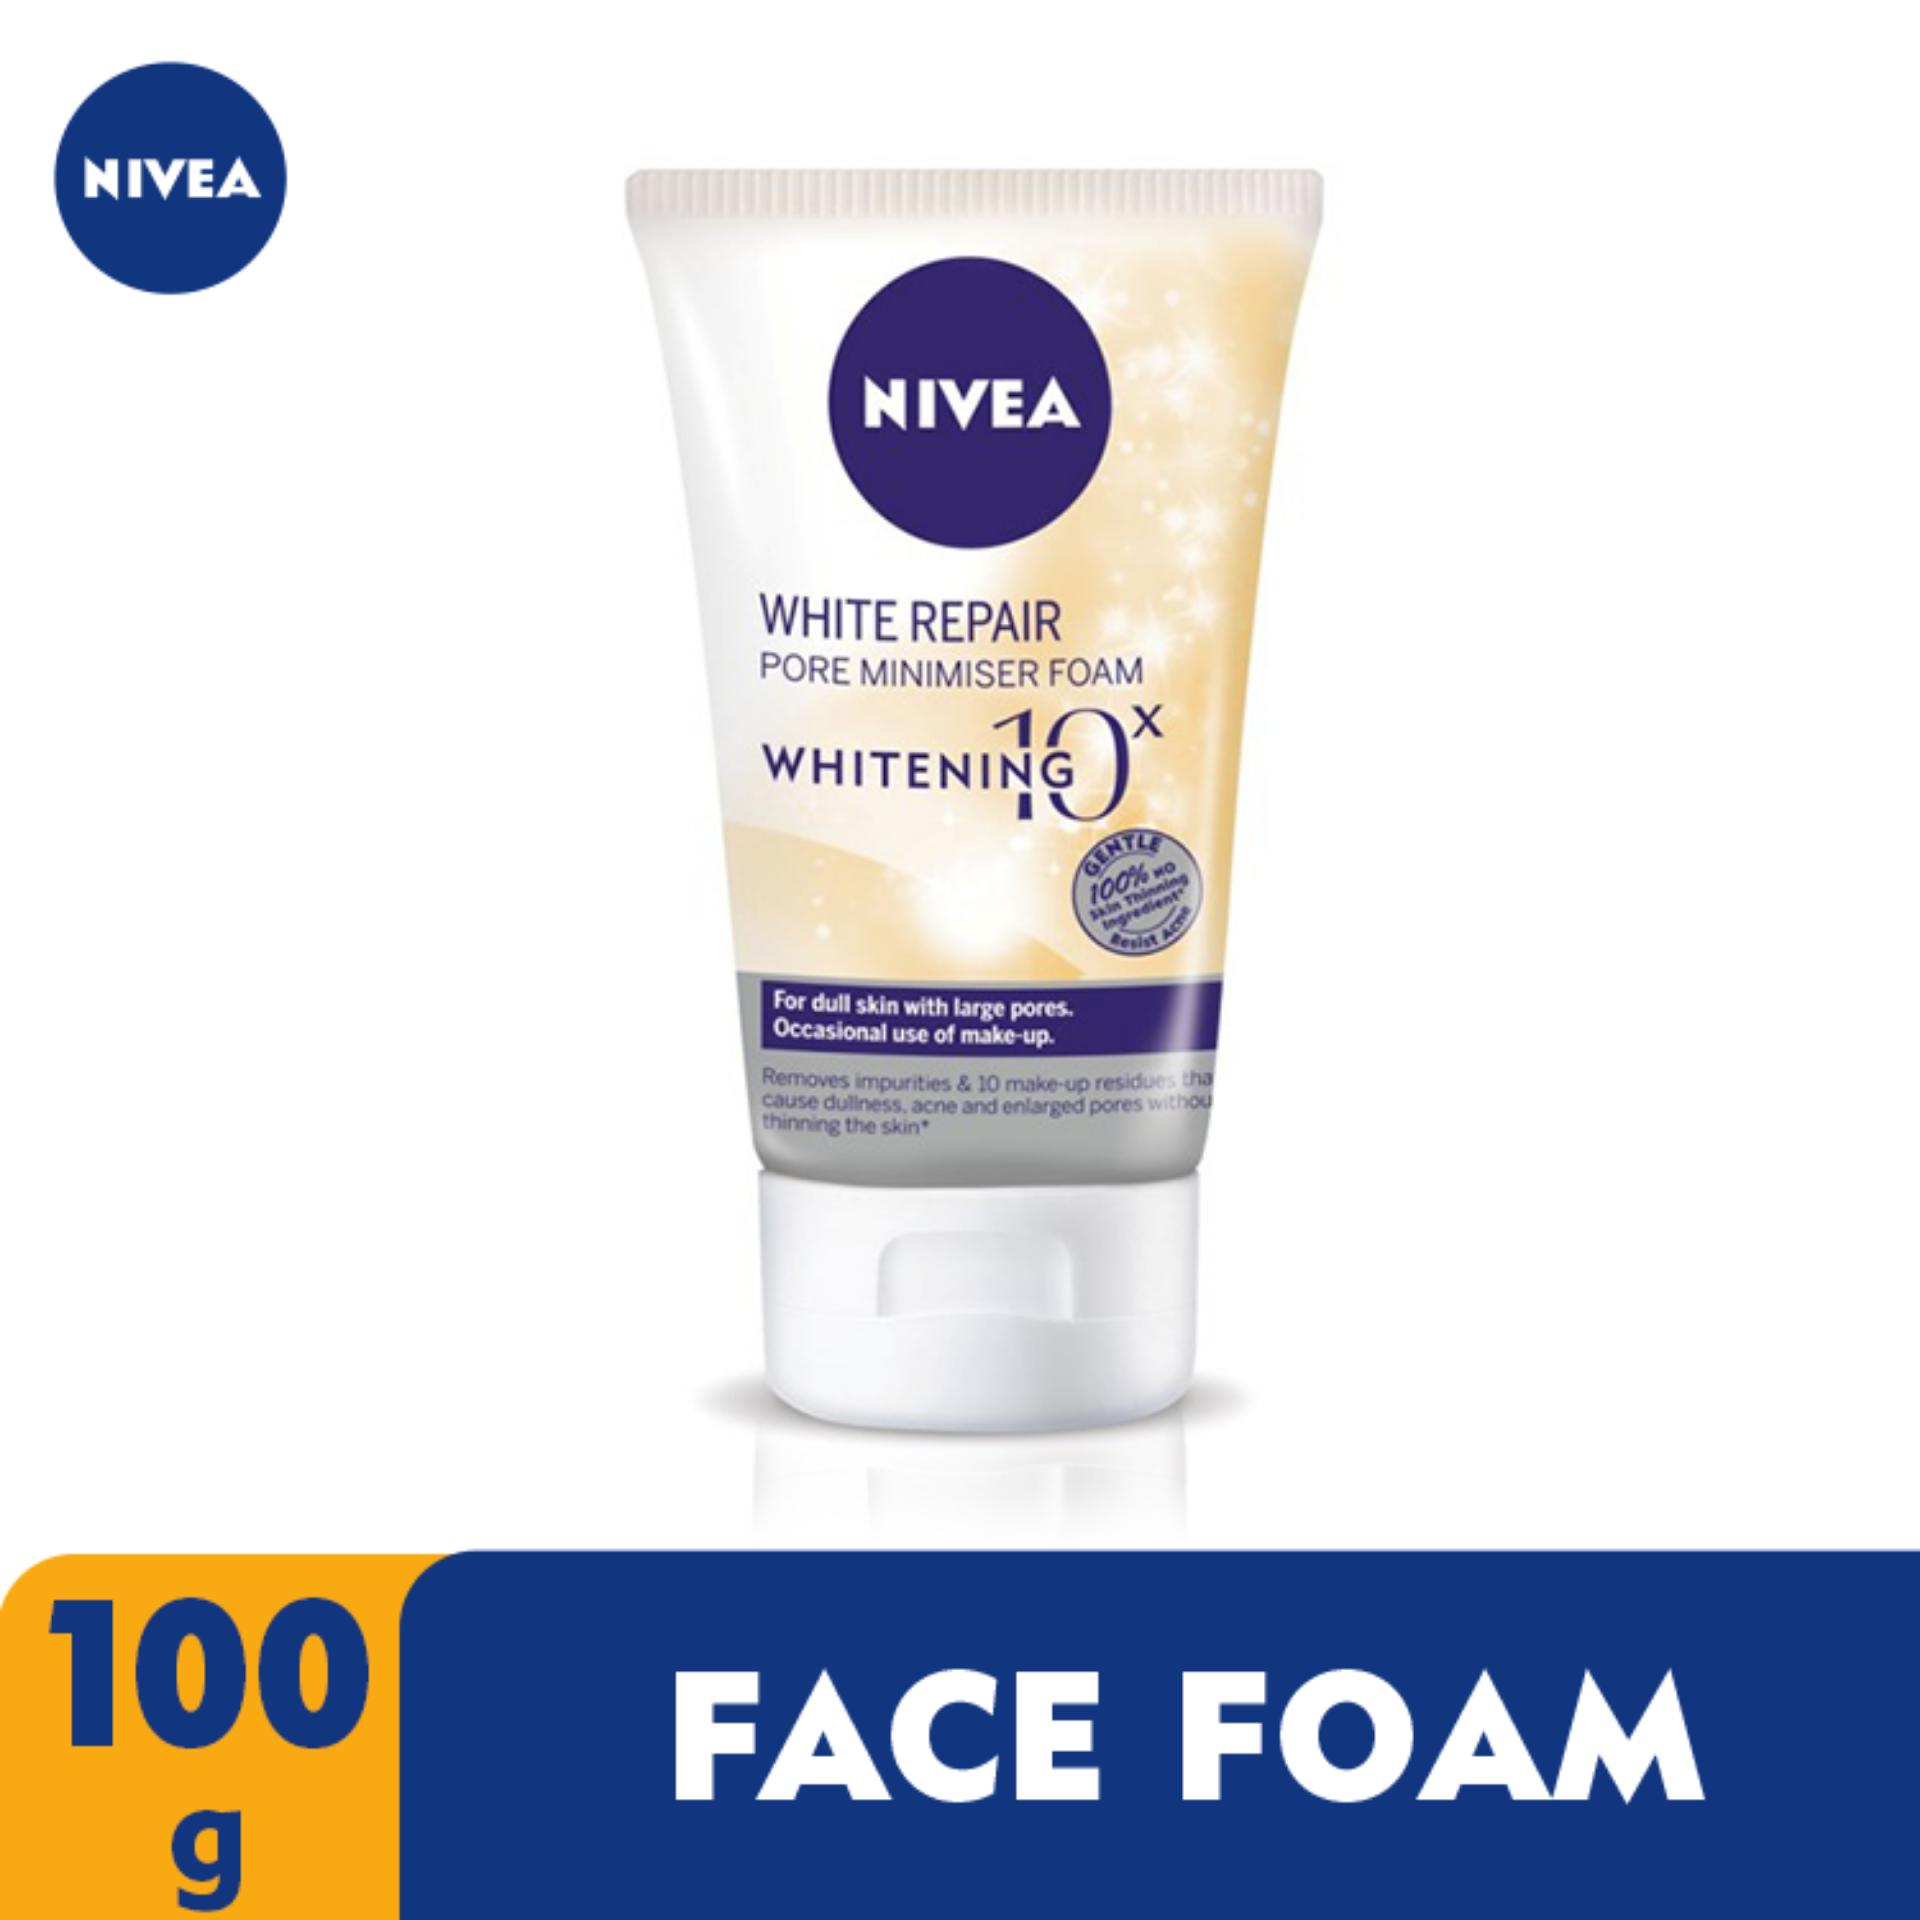 Nivea Philippines Price List Lotion Deodorant Baby Make Up Clear 2 In 1 White Foam 100ml Face Repair 100g